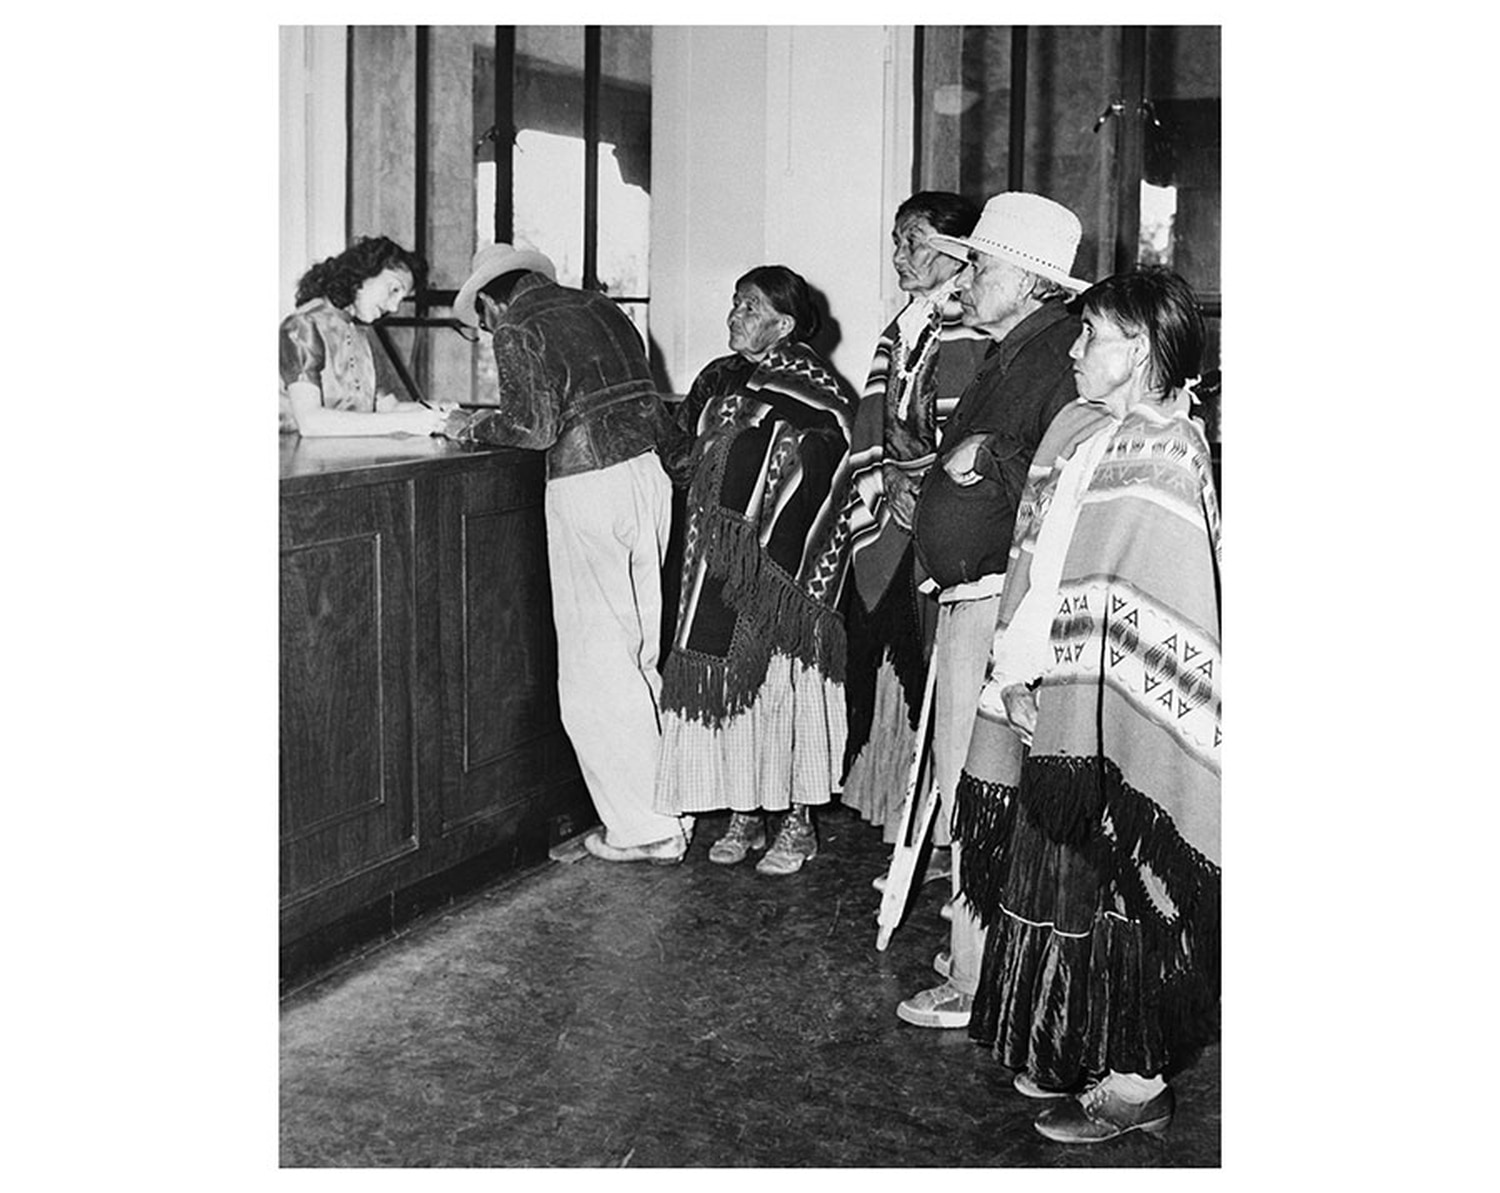 Native Americans attempting to register to vote in New Mexico in 1948.